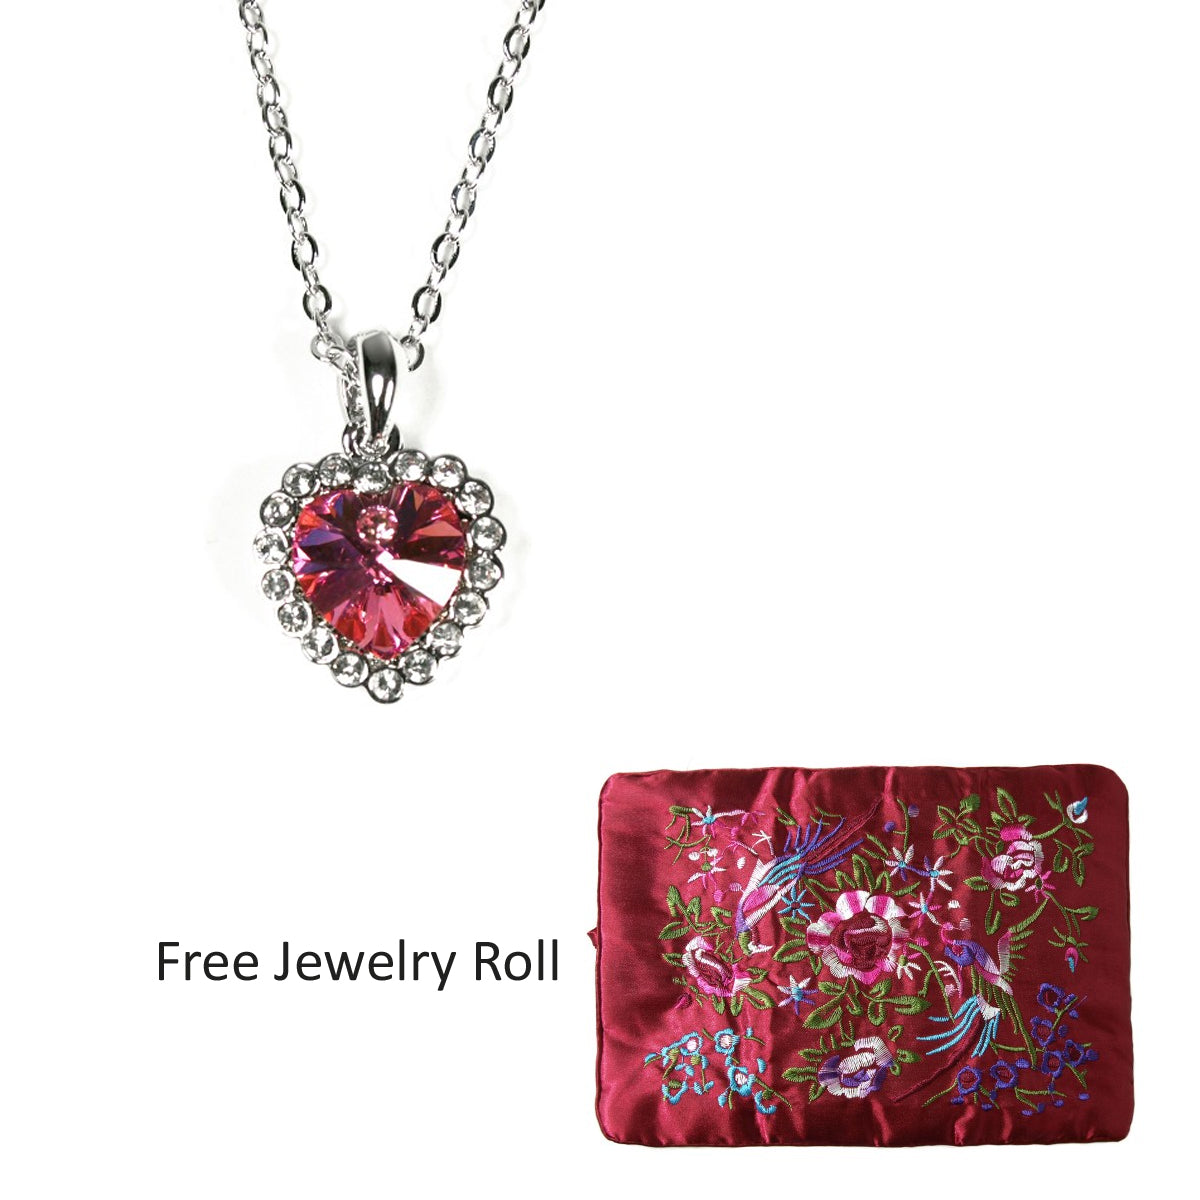 Rose Red Heart Shaped Swarovski Elements Crystal Pendant Necklace, 16 Inches + Large Burgundy Silk Embroidered Jewelry Roll